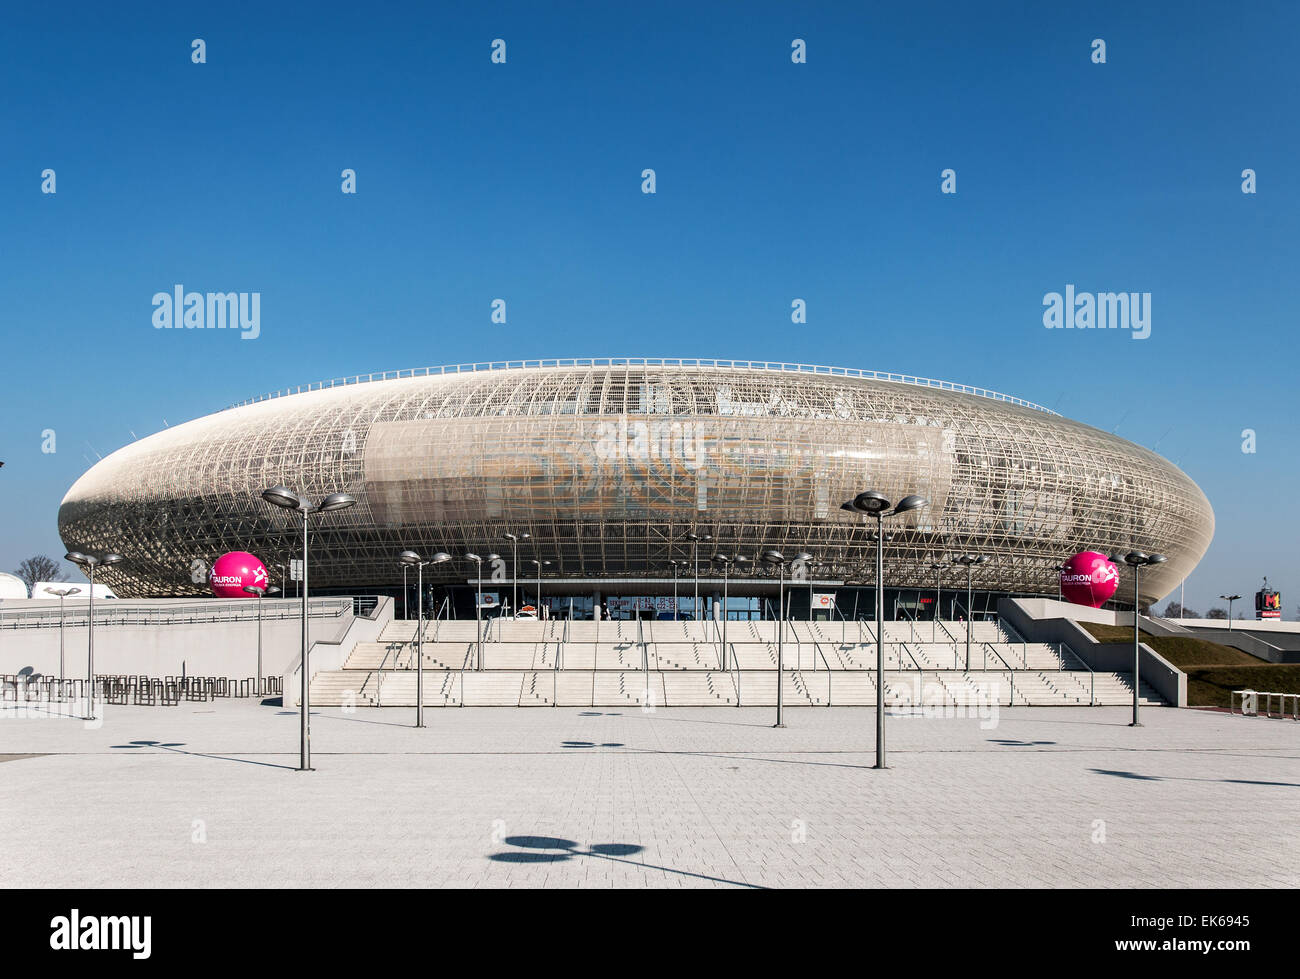 Tauron Arena in Krakow. Modern entertainment and sports venue. The biggest one in Poland. - Stock Image